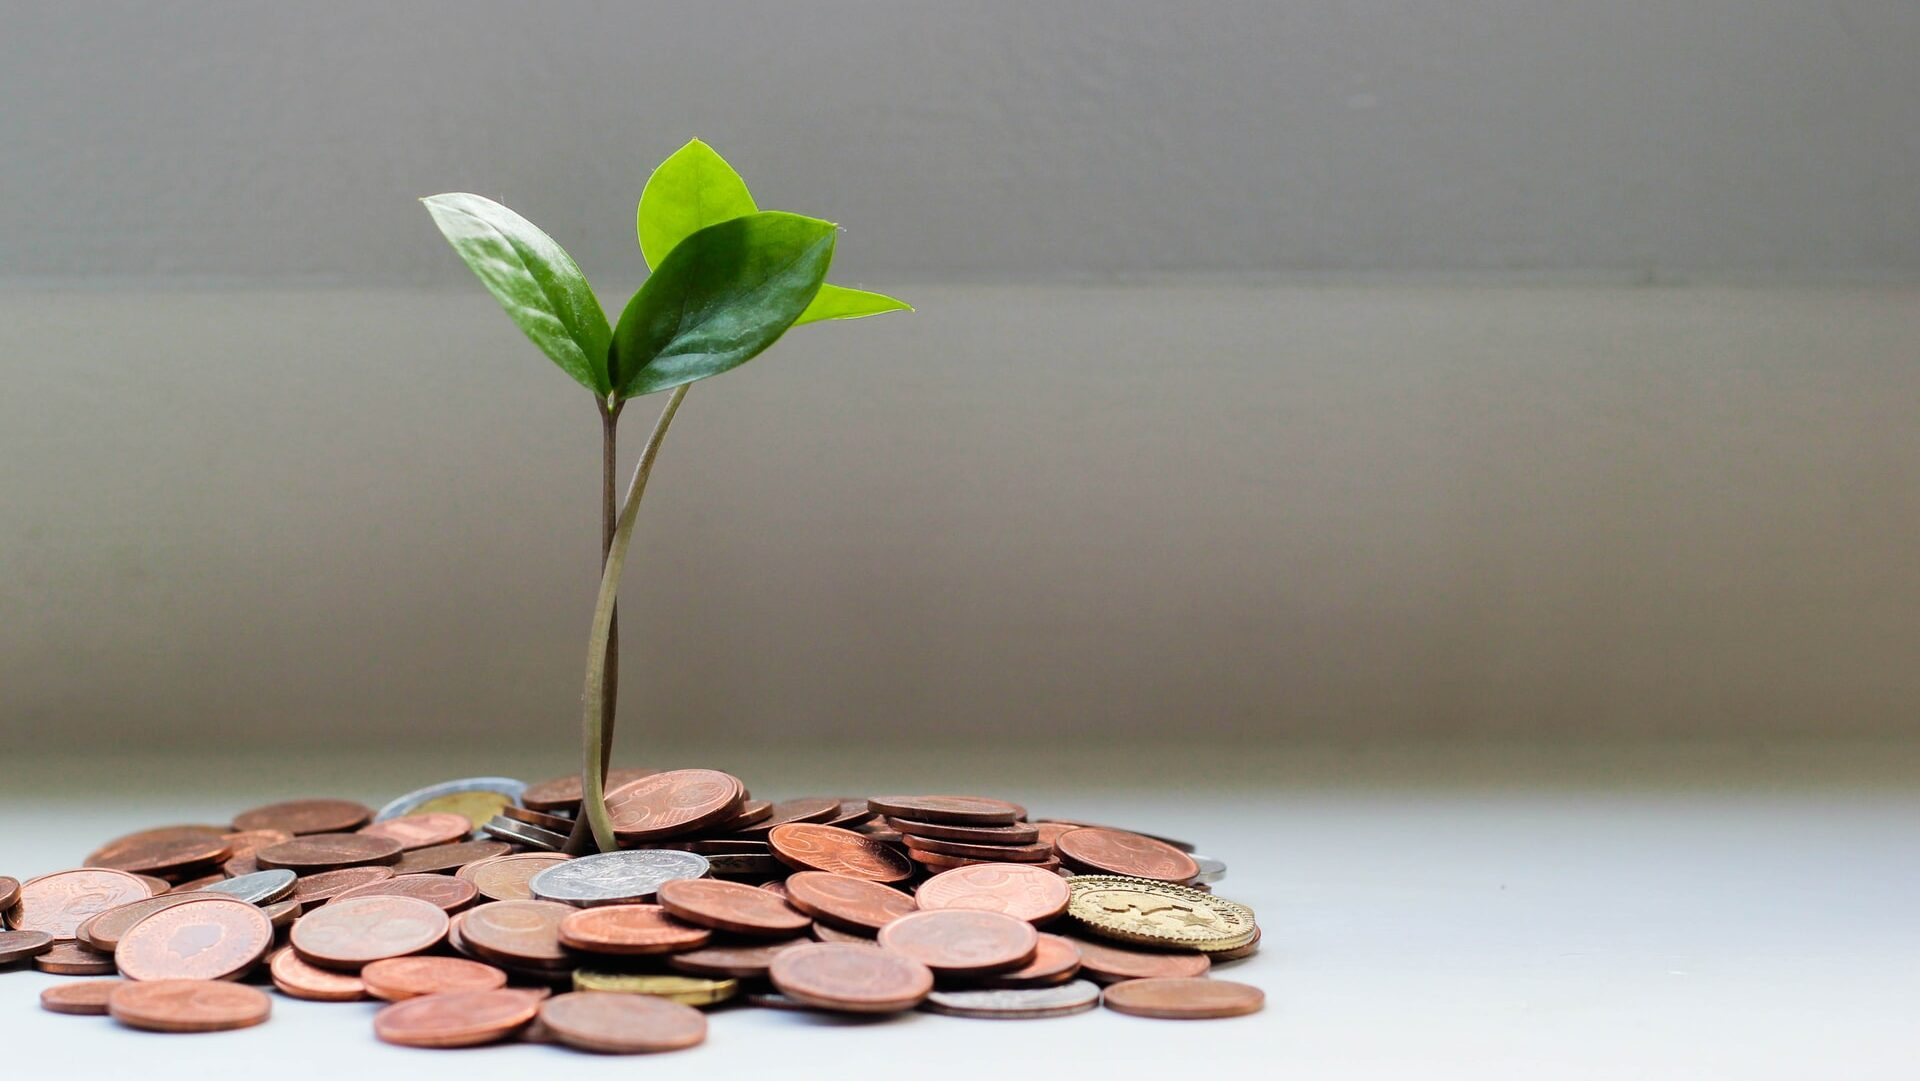 Green leaves sprouting from a pile of copper coins